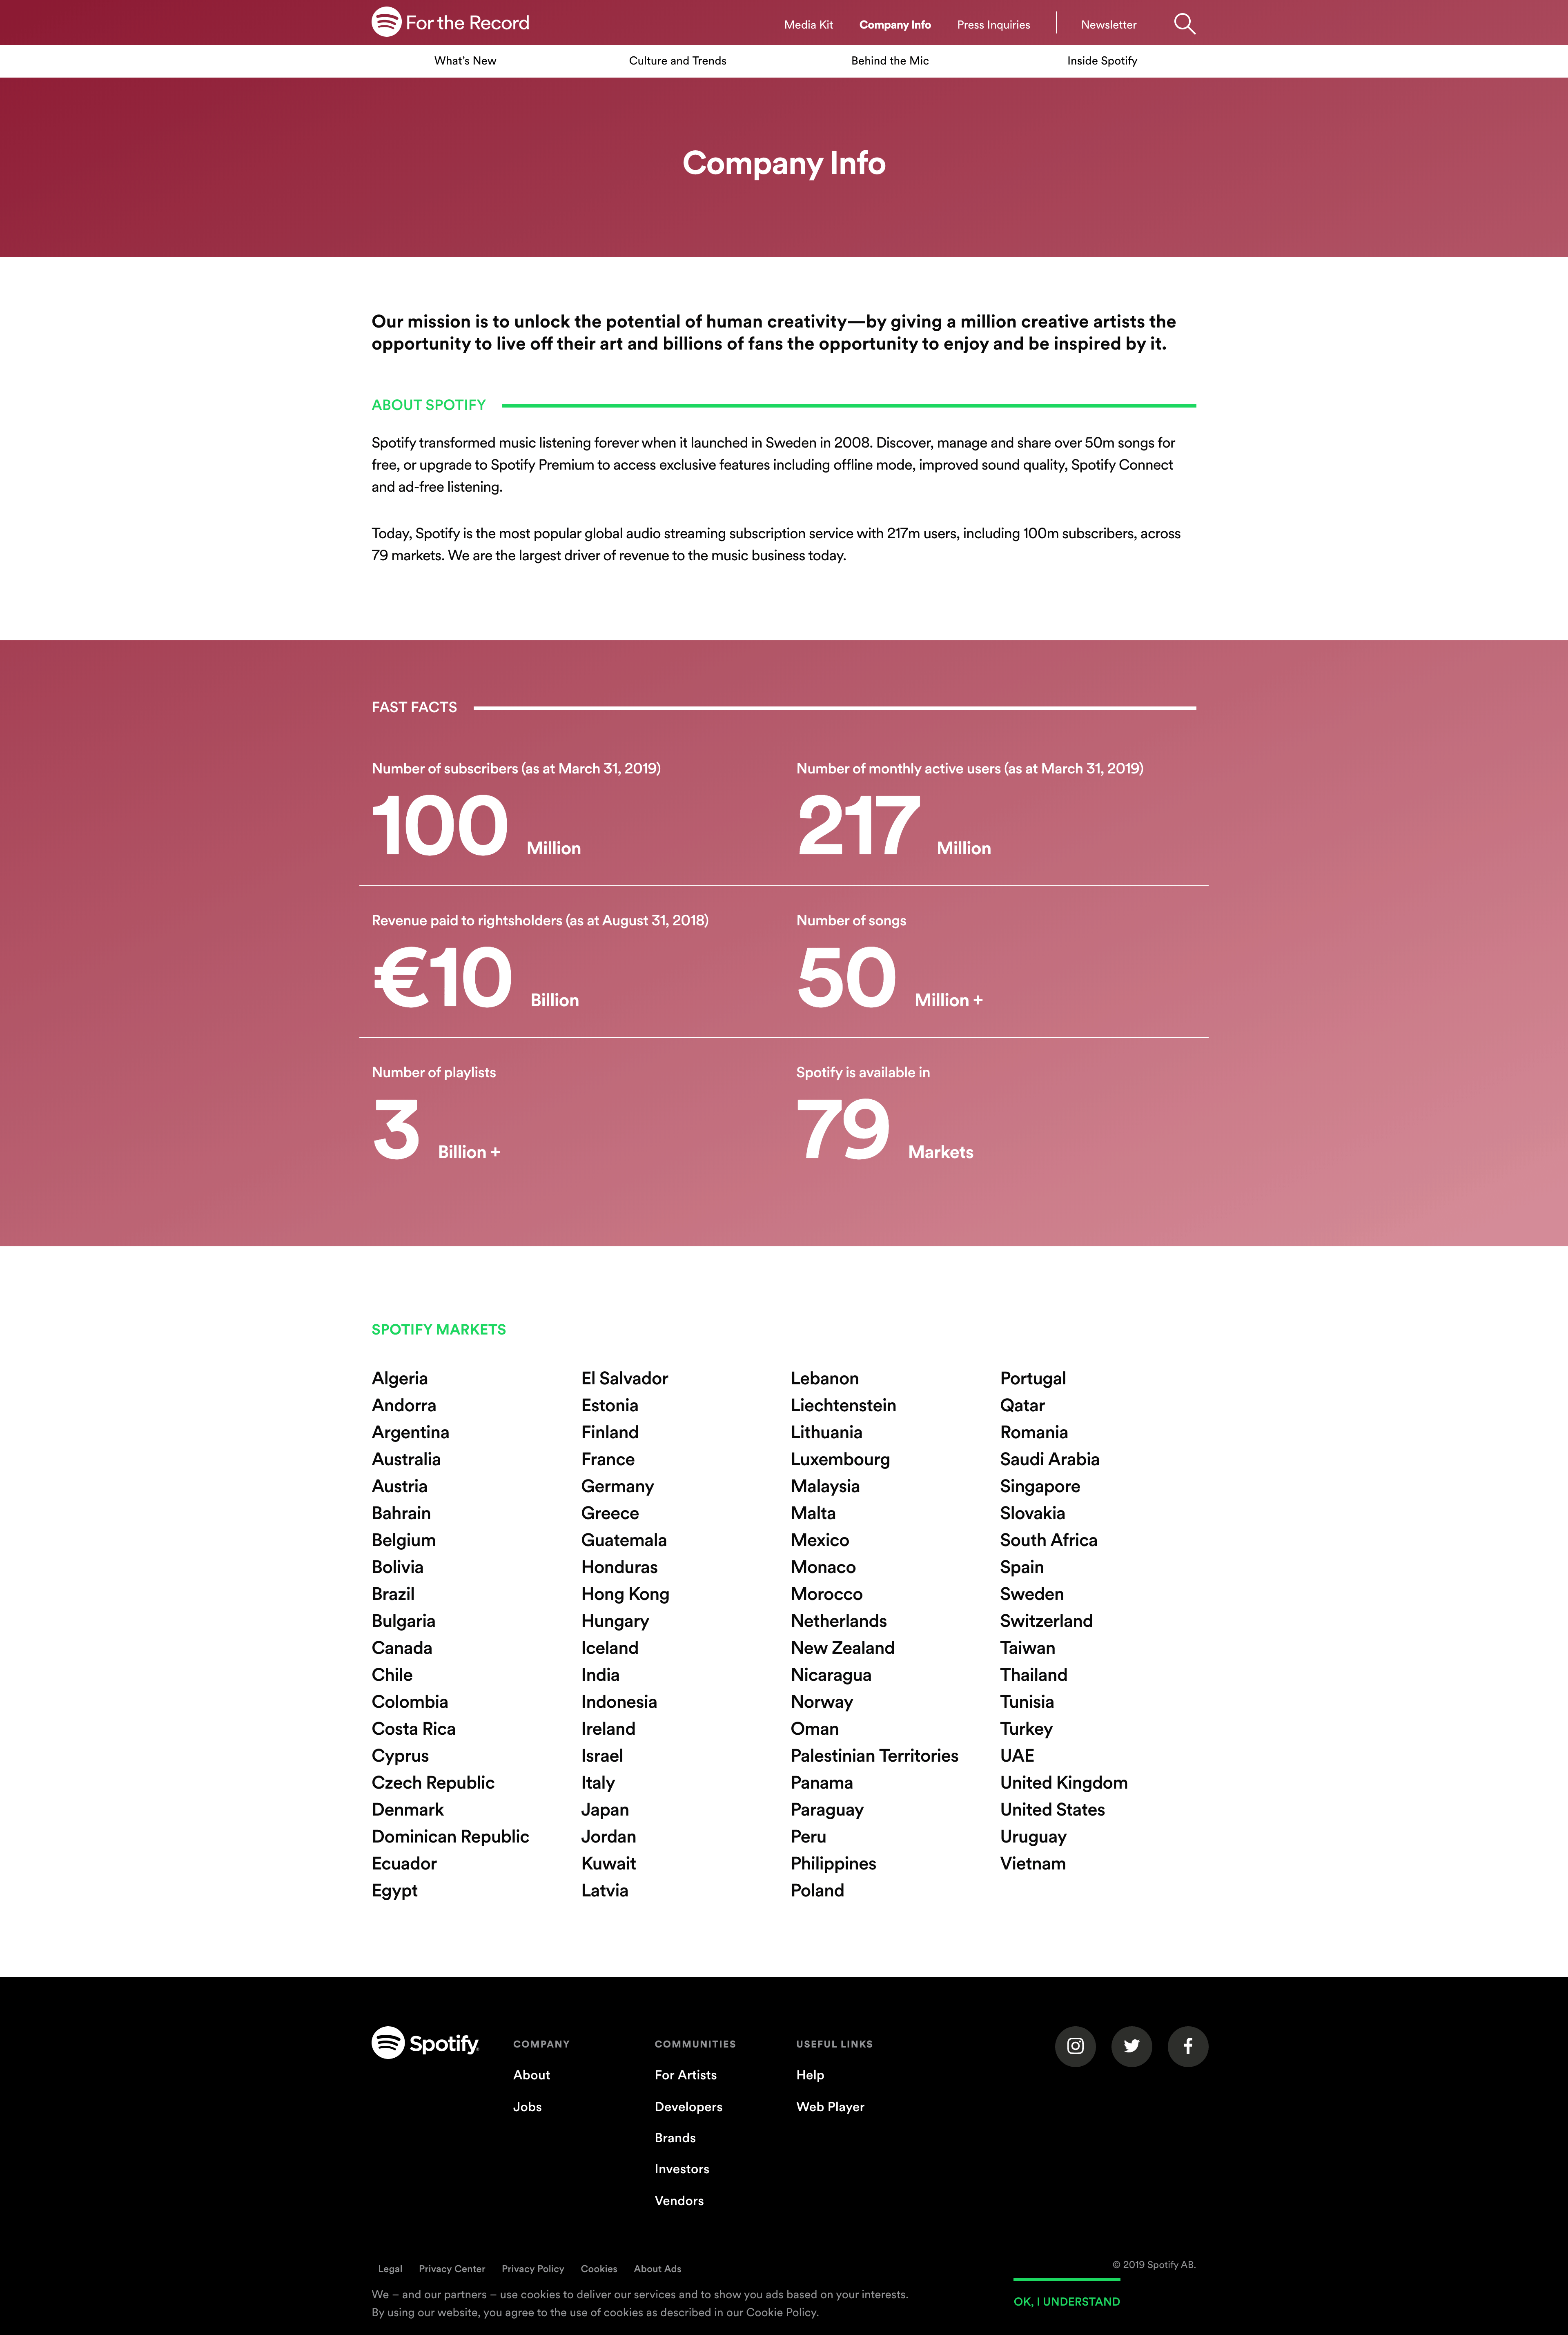 Company Info by Spotify For the Record